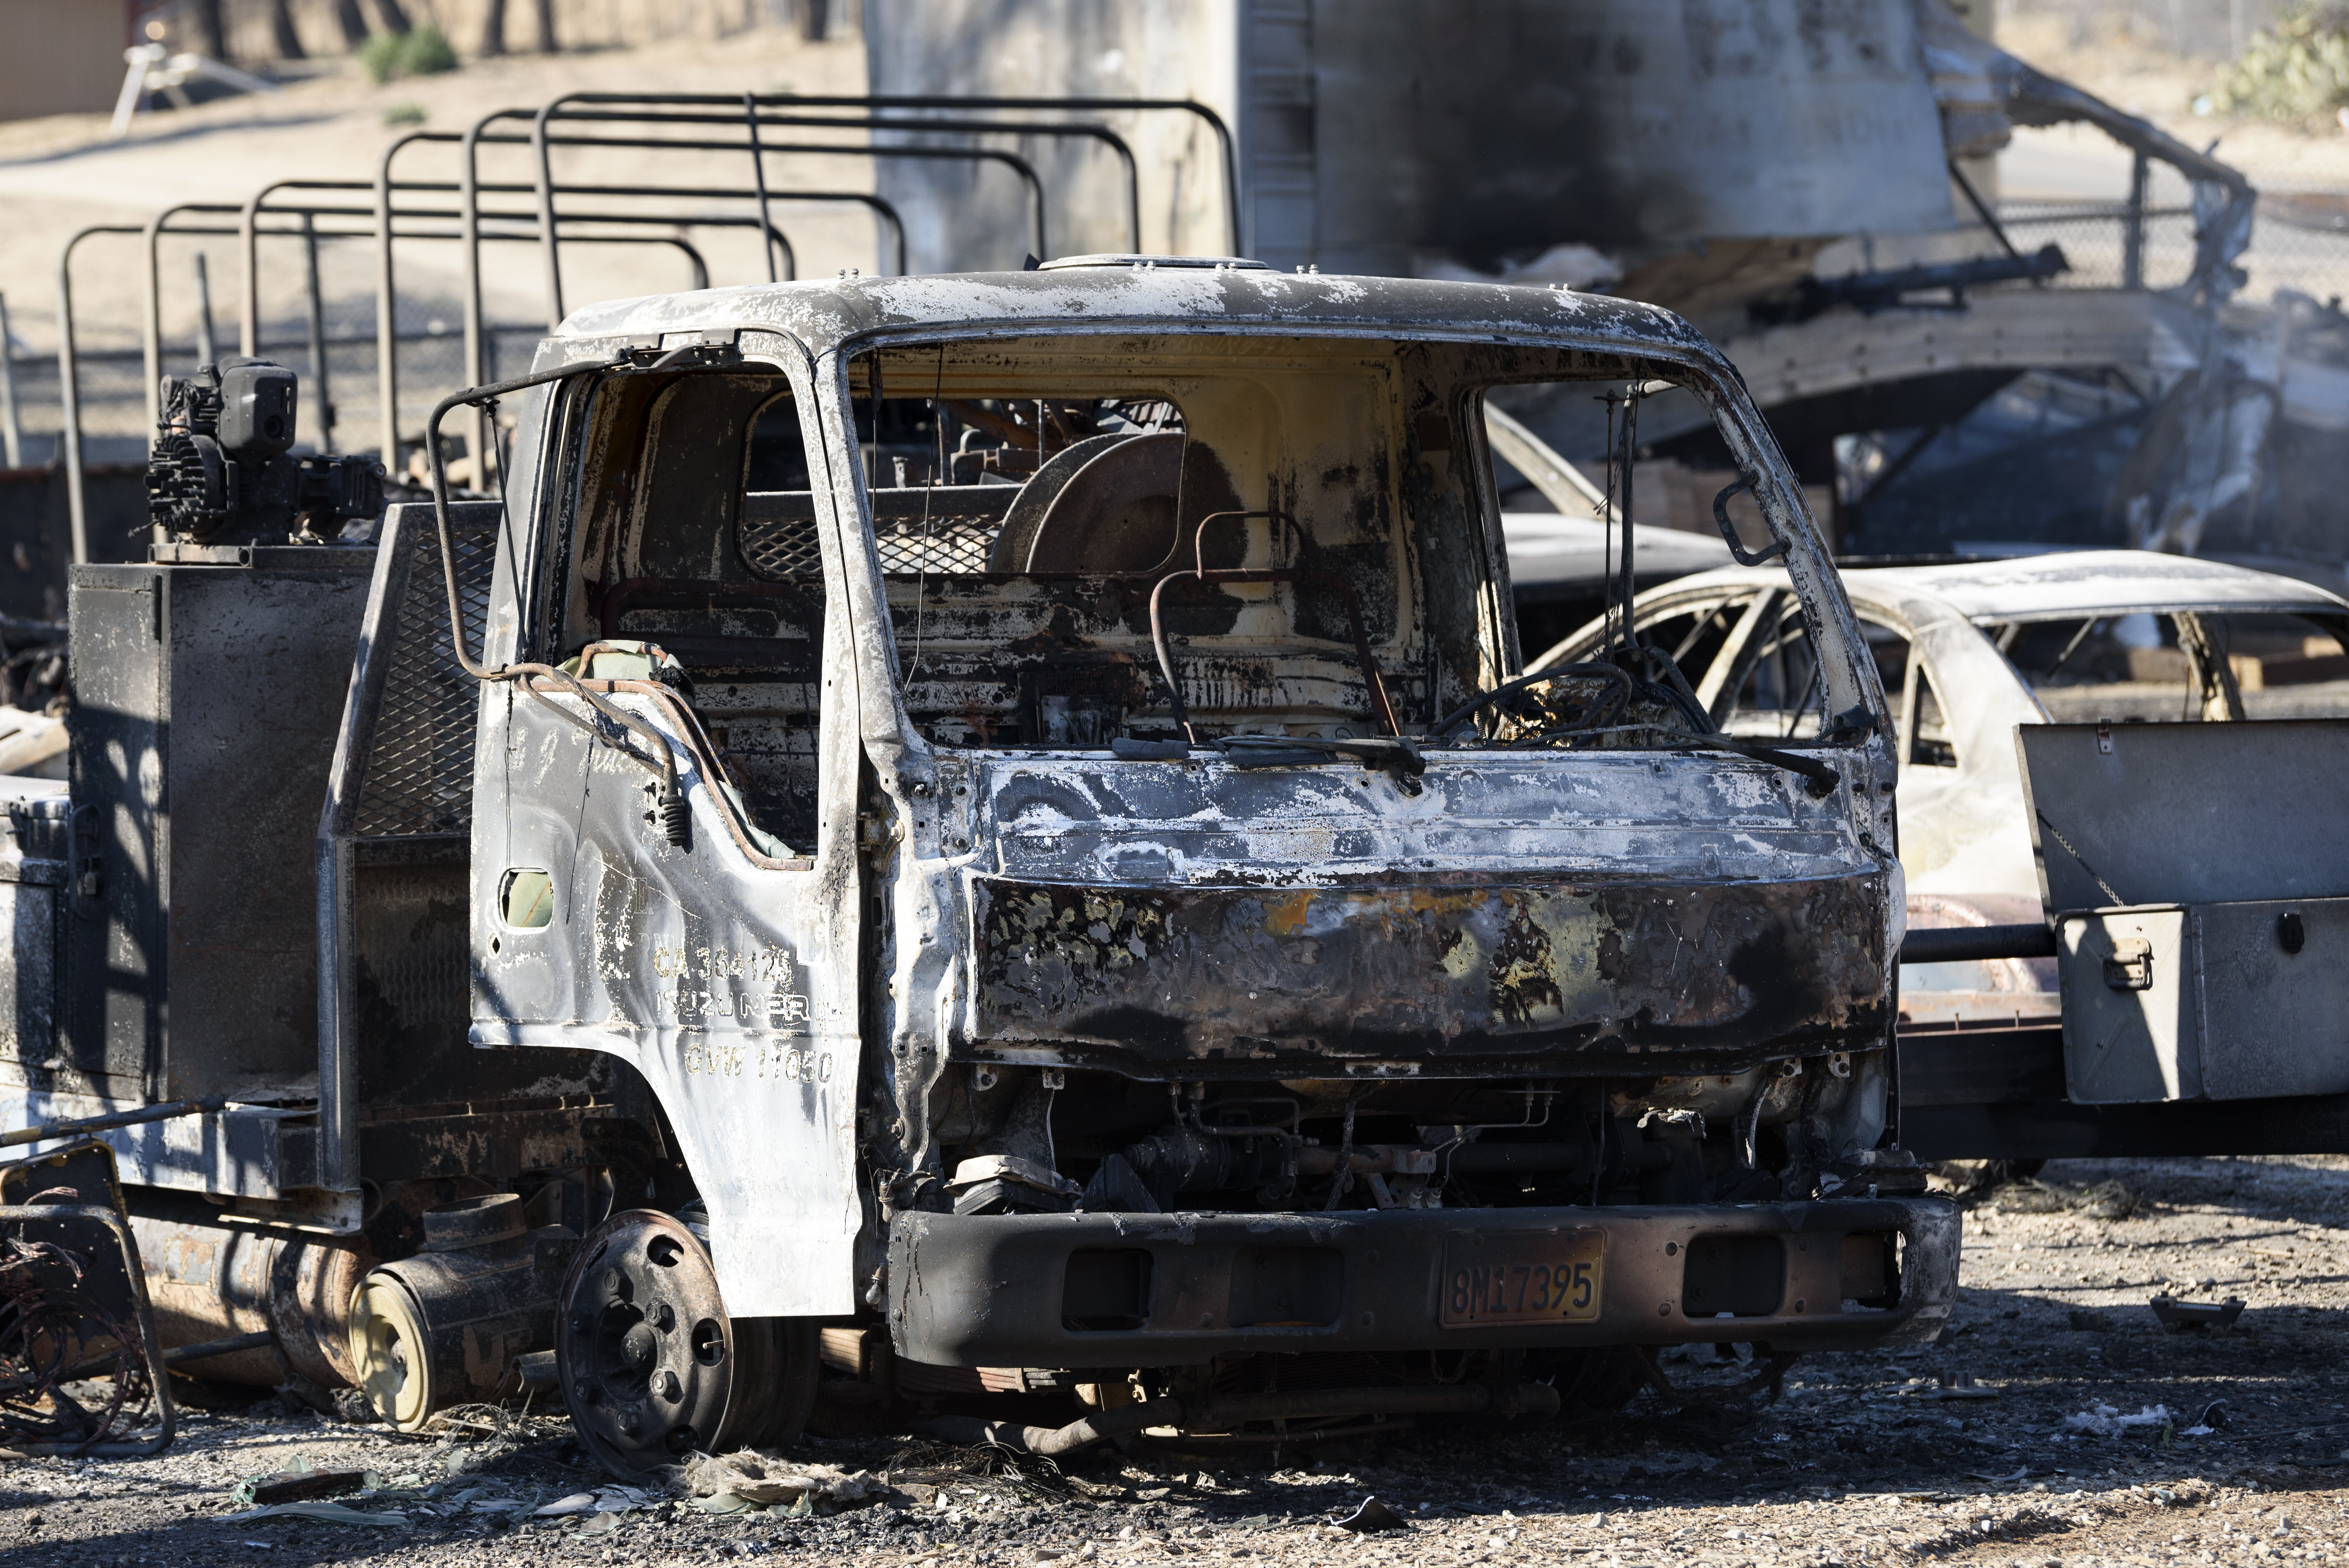 <div class='meta'><div class='origin-logo' data-origin='none'></div><span class='caption-text' data-credit='Ronen Tivony/NurPhoto via Getty'>A truck destroyed by the Creek Fire in the Sylmar neighborhood in Los Angeles, California, on December 6, 2017.</span></div>